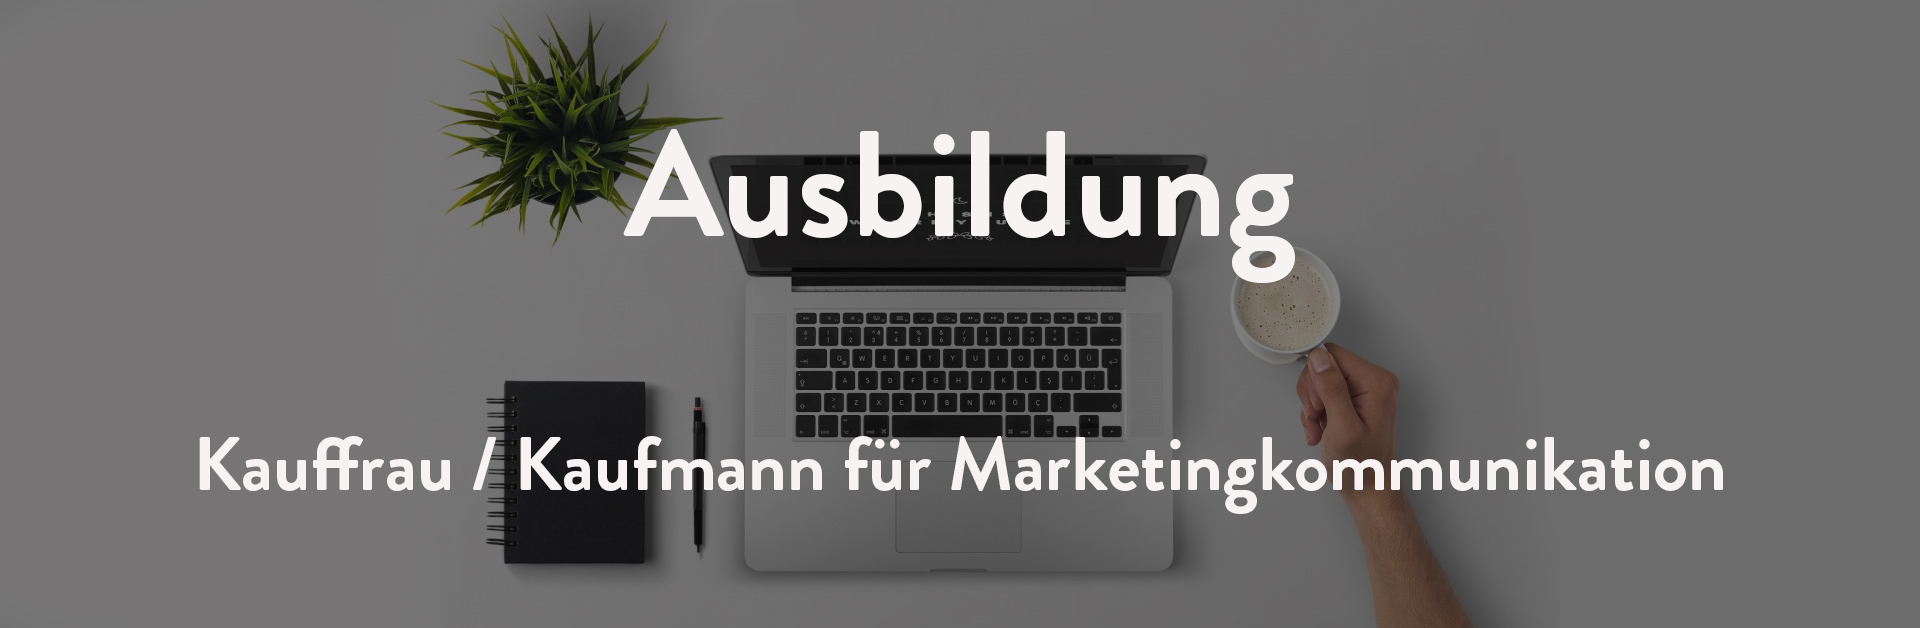 Ausbildung Marketingkommunikation